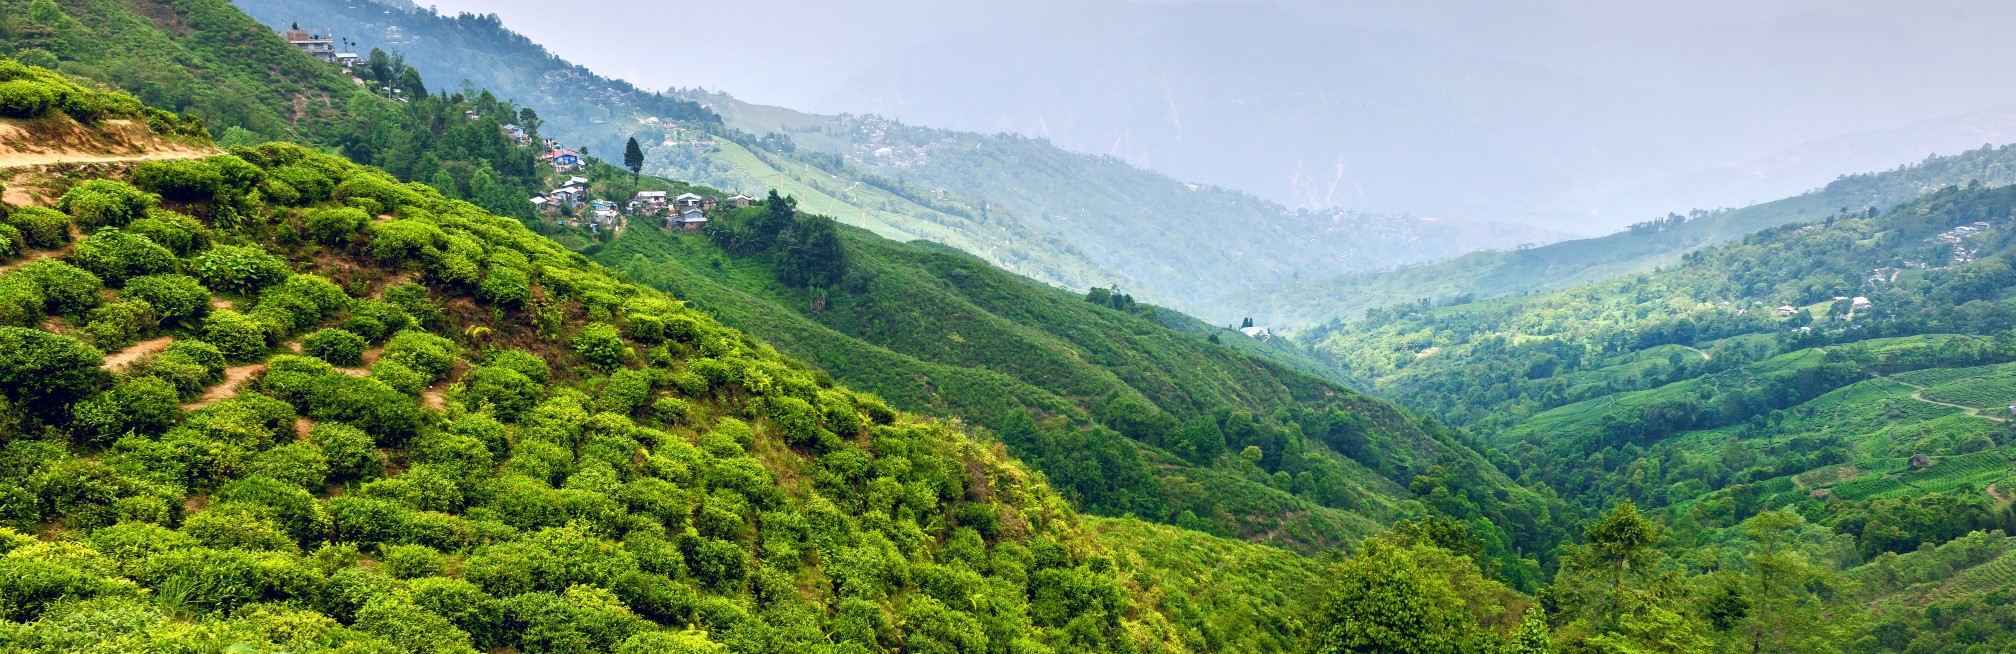 Into the Himalayas: mountain villages and high tea